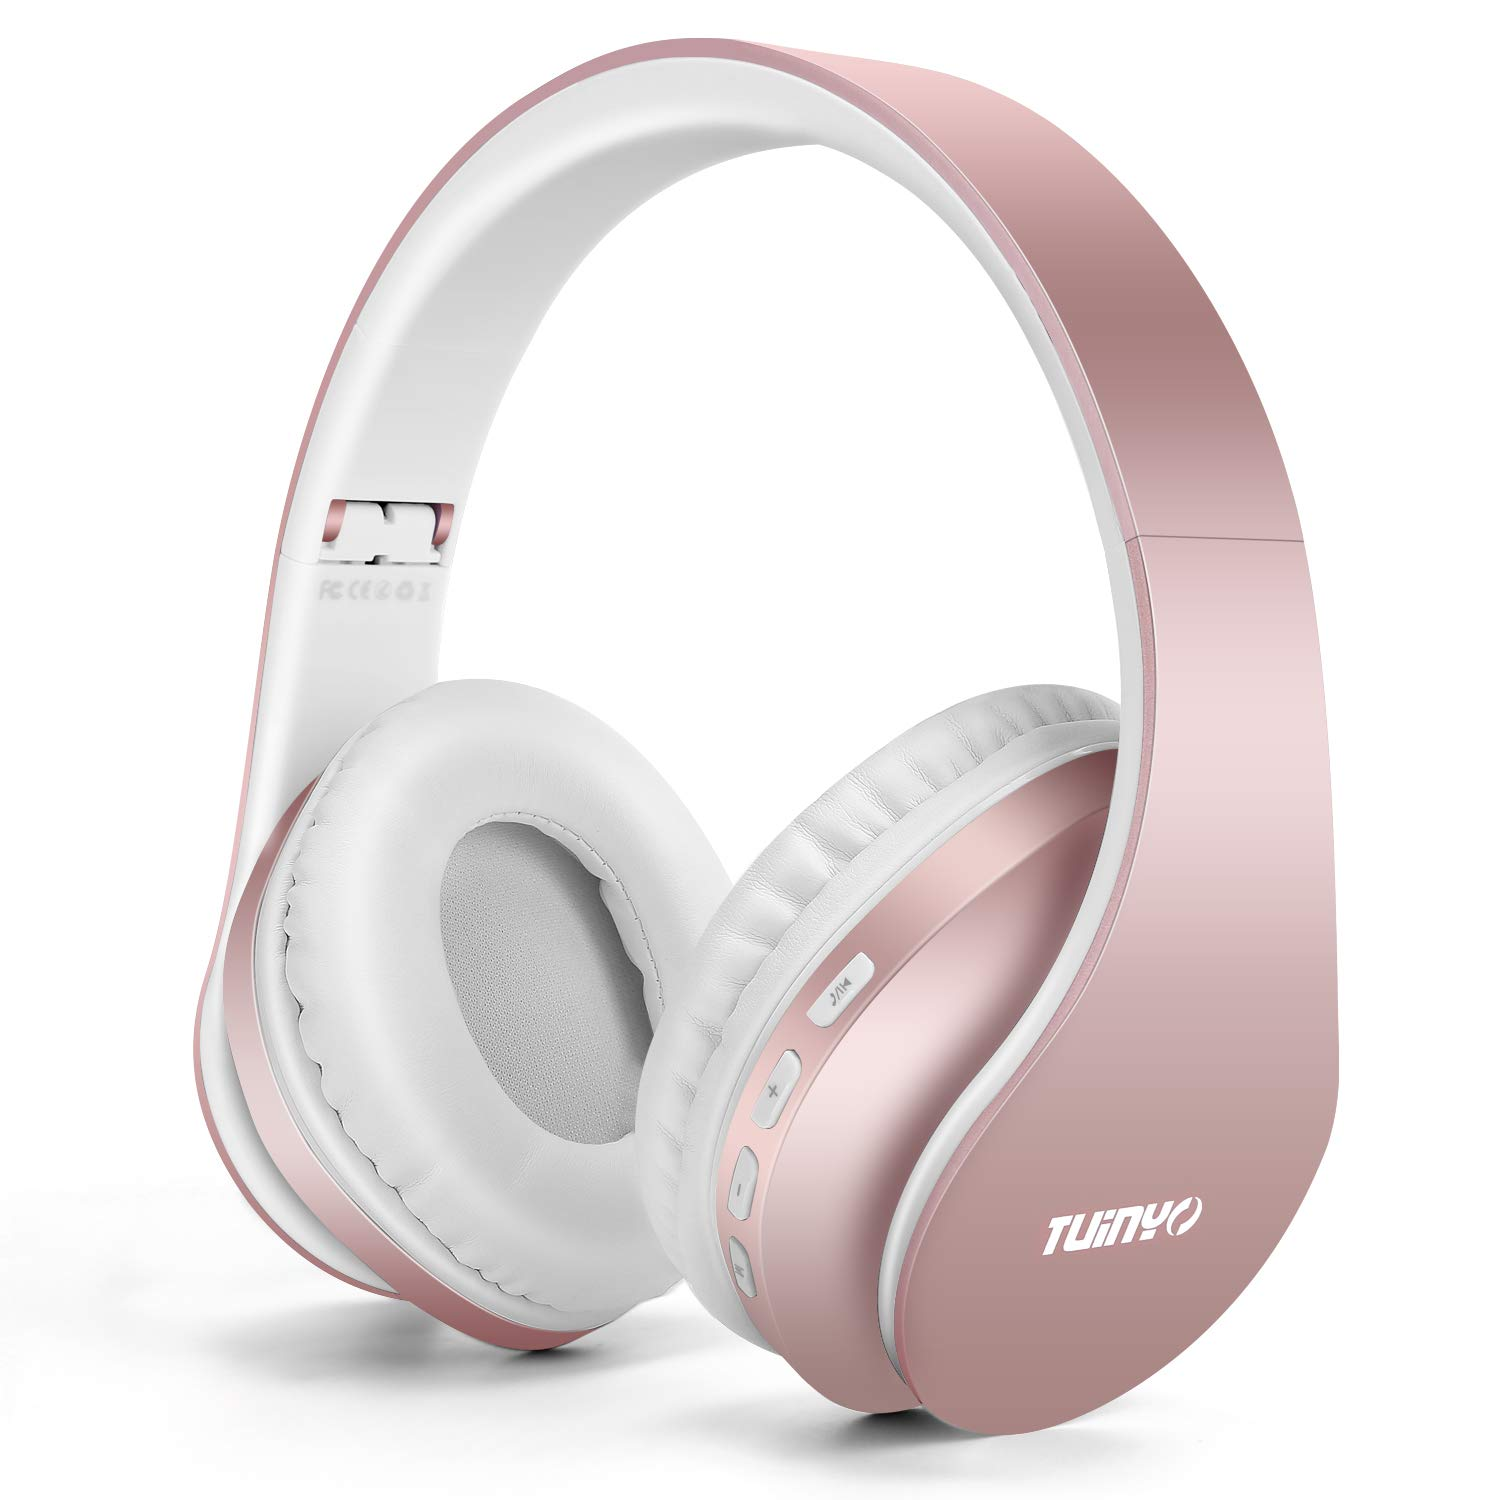 Bluetooth Headphones Tuinyo Wireless Headphones Over Ear With Microphone Foldable Lightweight Stereo Wireless Headset For Travel Work Tv Pc Cellphone Rose Gold Buy Online In India Missing Category Value Products